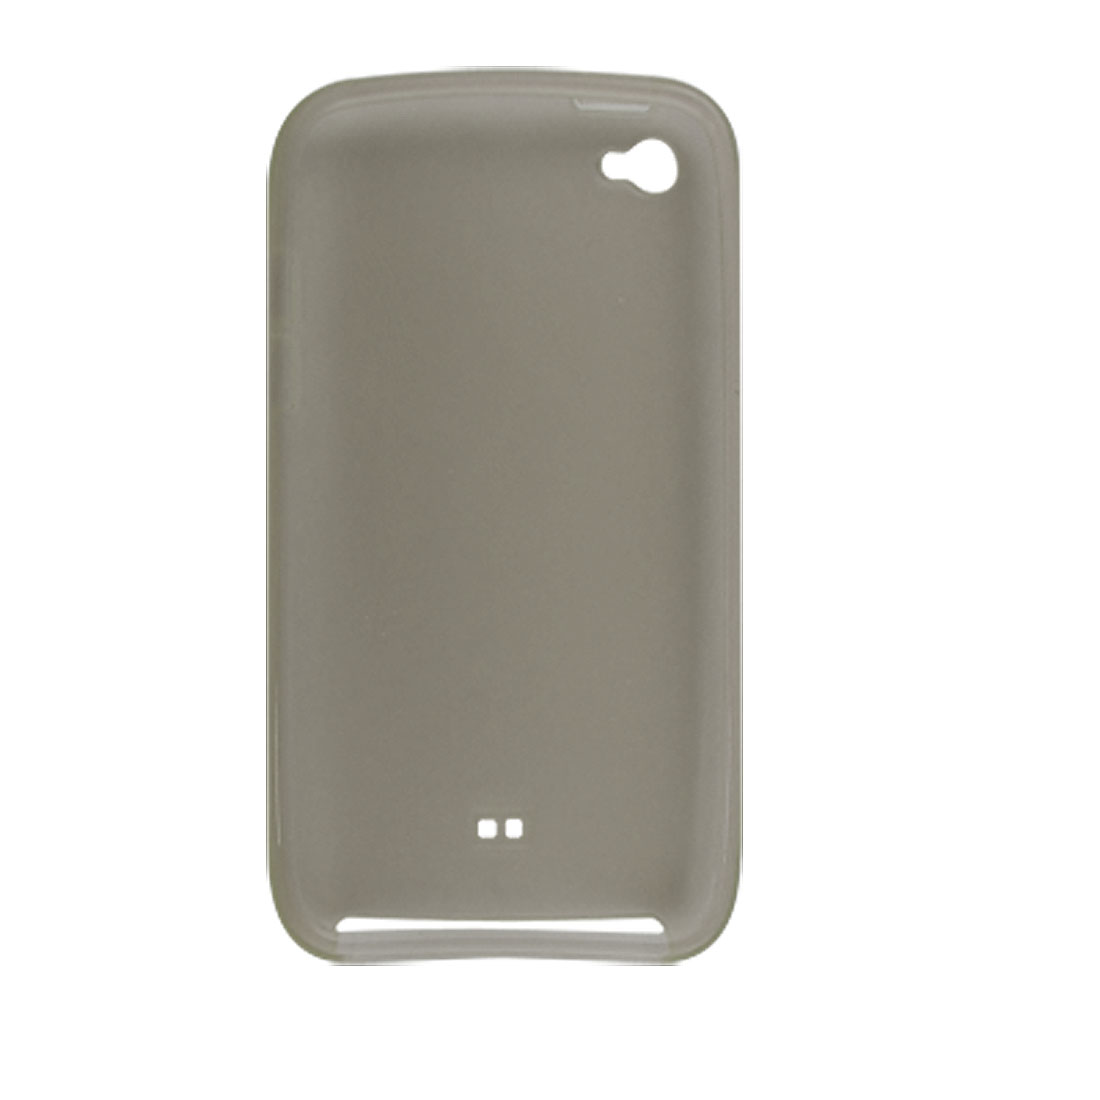 Soft Plastic Light Gray Cover Case for iPod Touch 4G